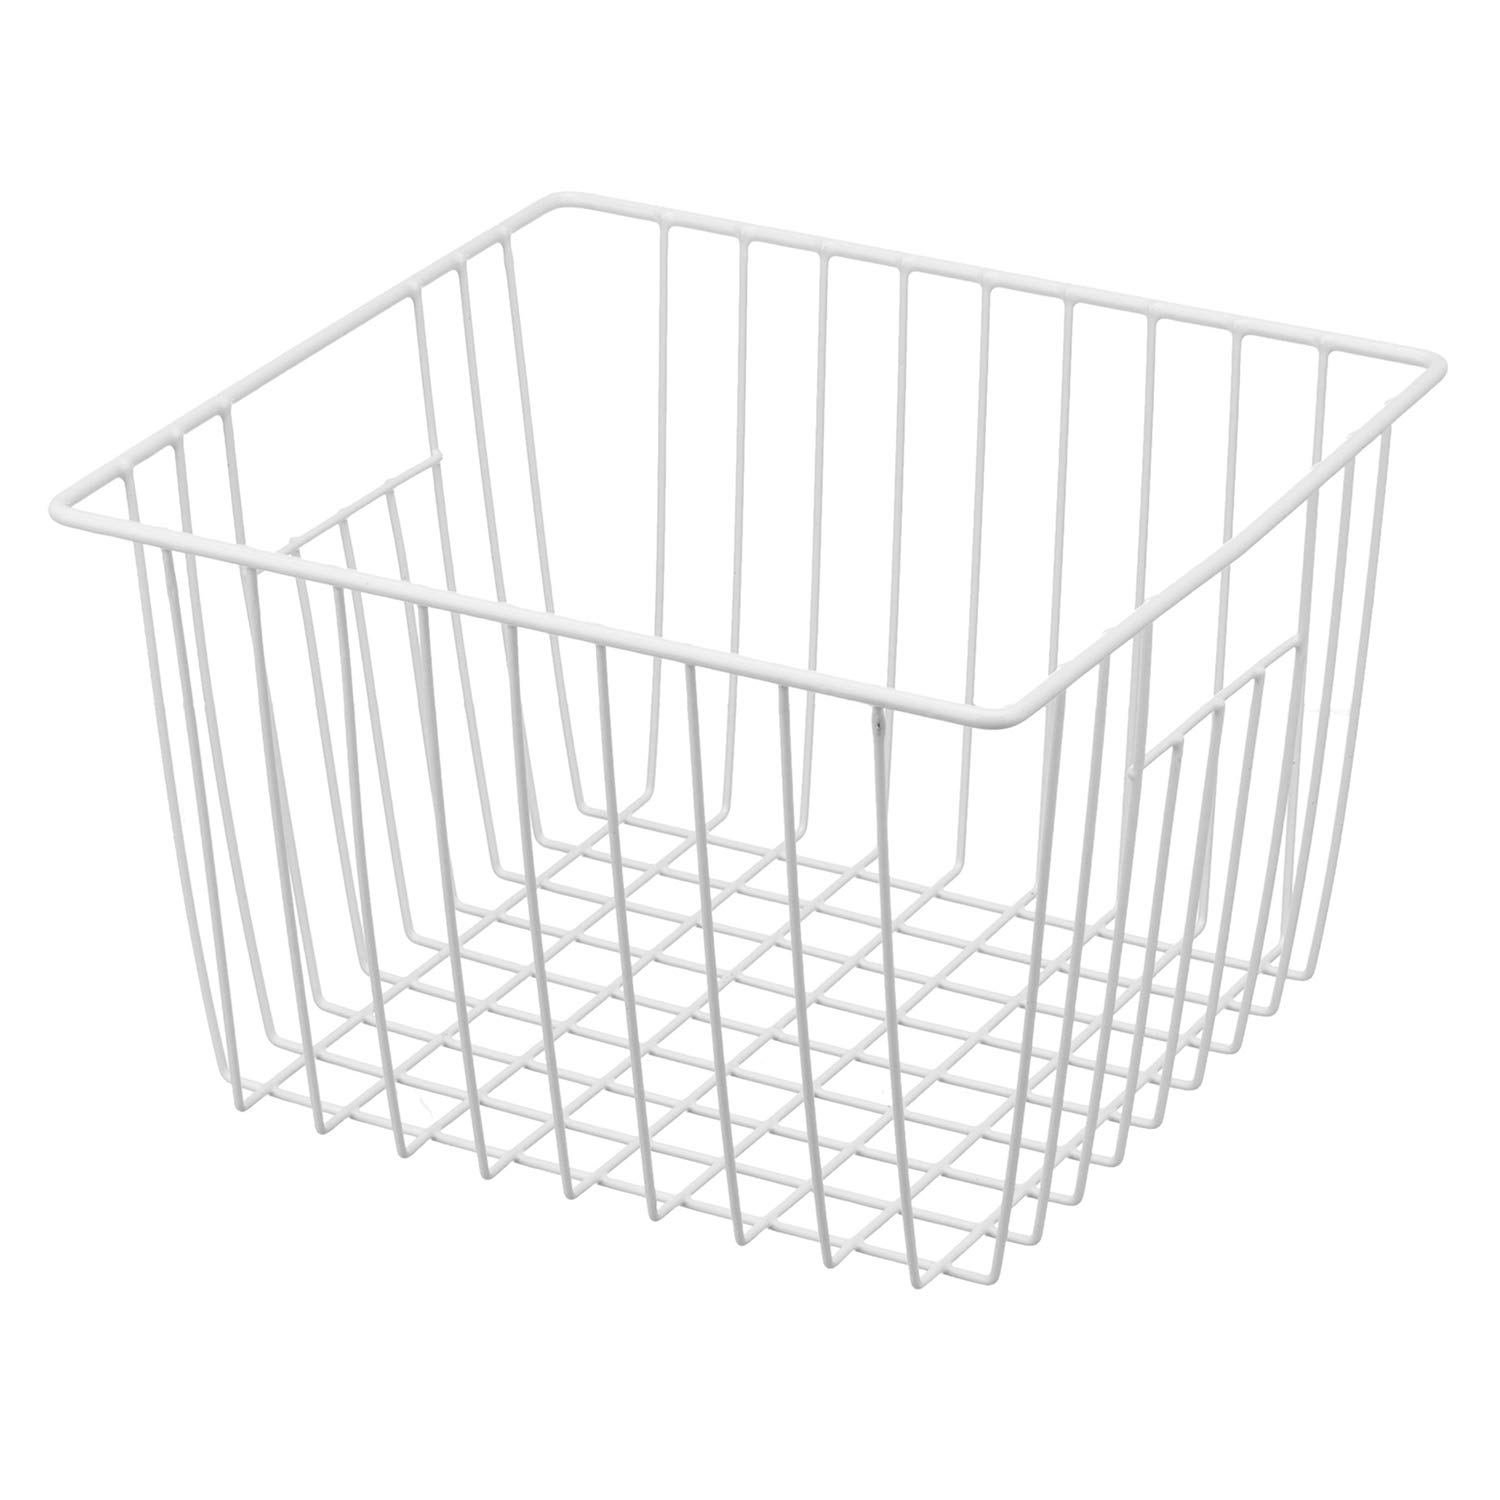 iPEGTOP Deep Refrigerator Freezer Baskets, Large Household Wire Storage Basket Bins Organizer with Handles for Kitchen, Pantry, Freezer, Cabinet, Closets, Pearl White